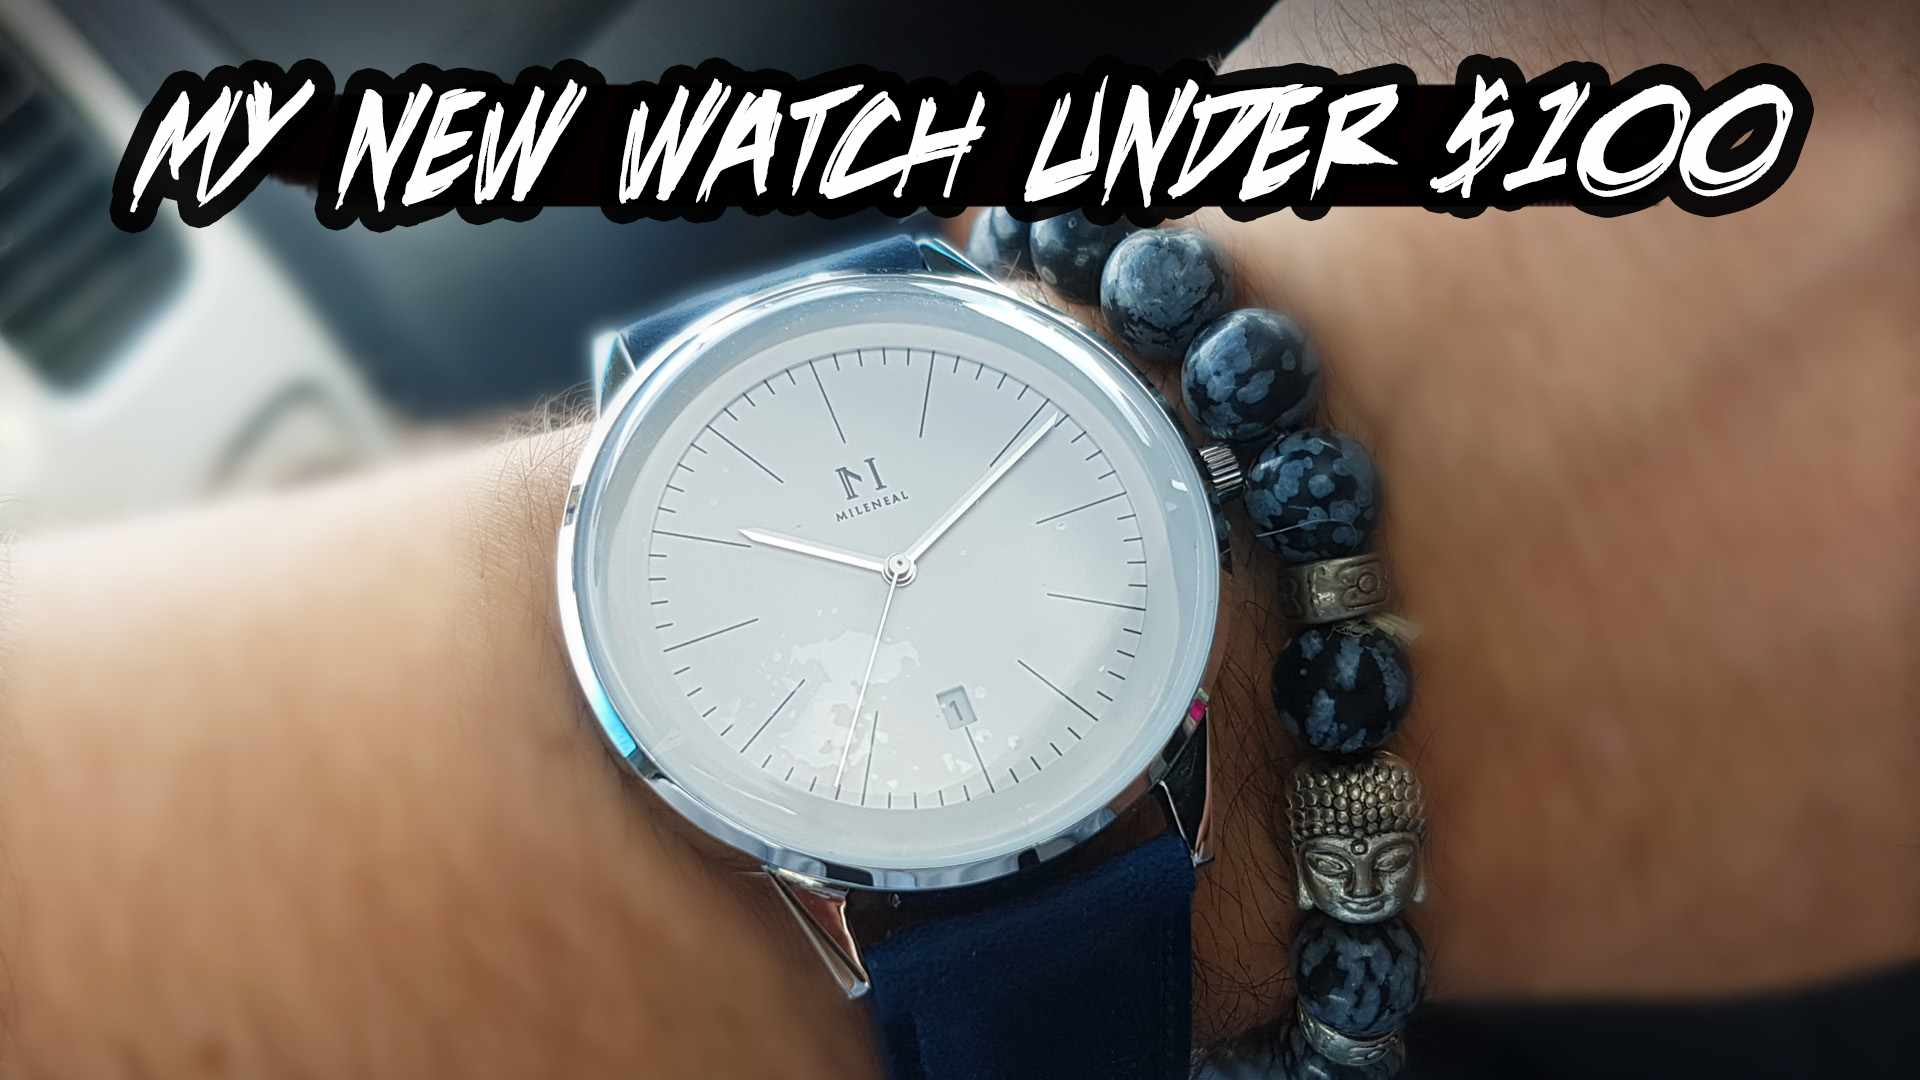 MY NEW WATCH Under $100: MILENEAL Silver White w Vintage Blue Band - CL30032